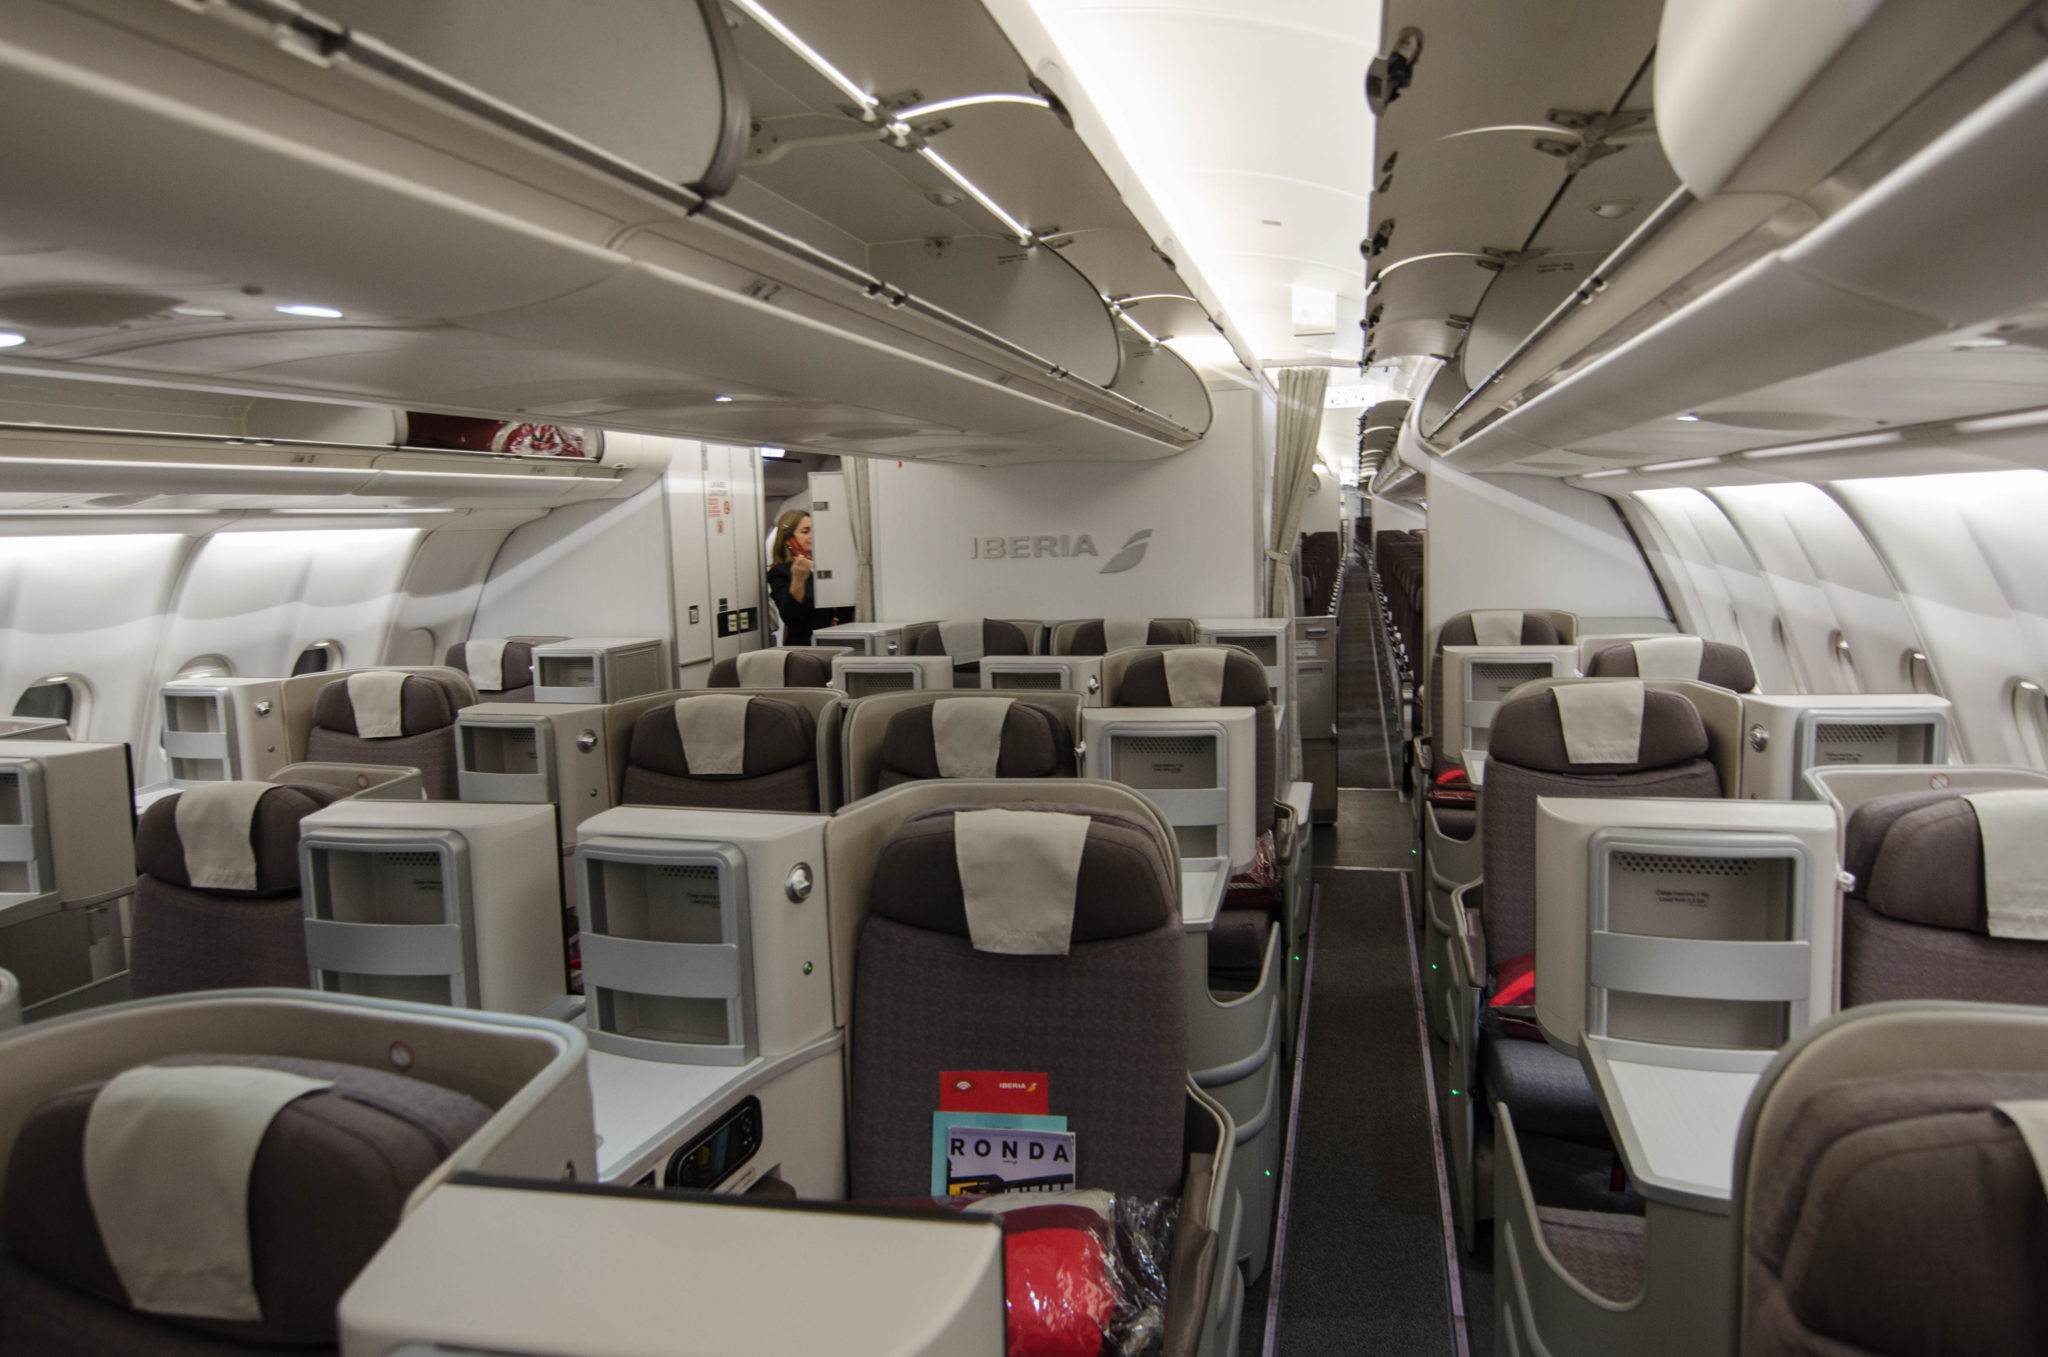 Review: Iberia A330-200 Business Class – Erfahrungen & Tipps